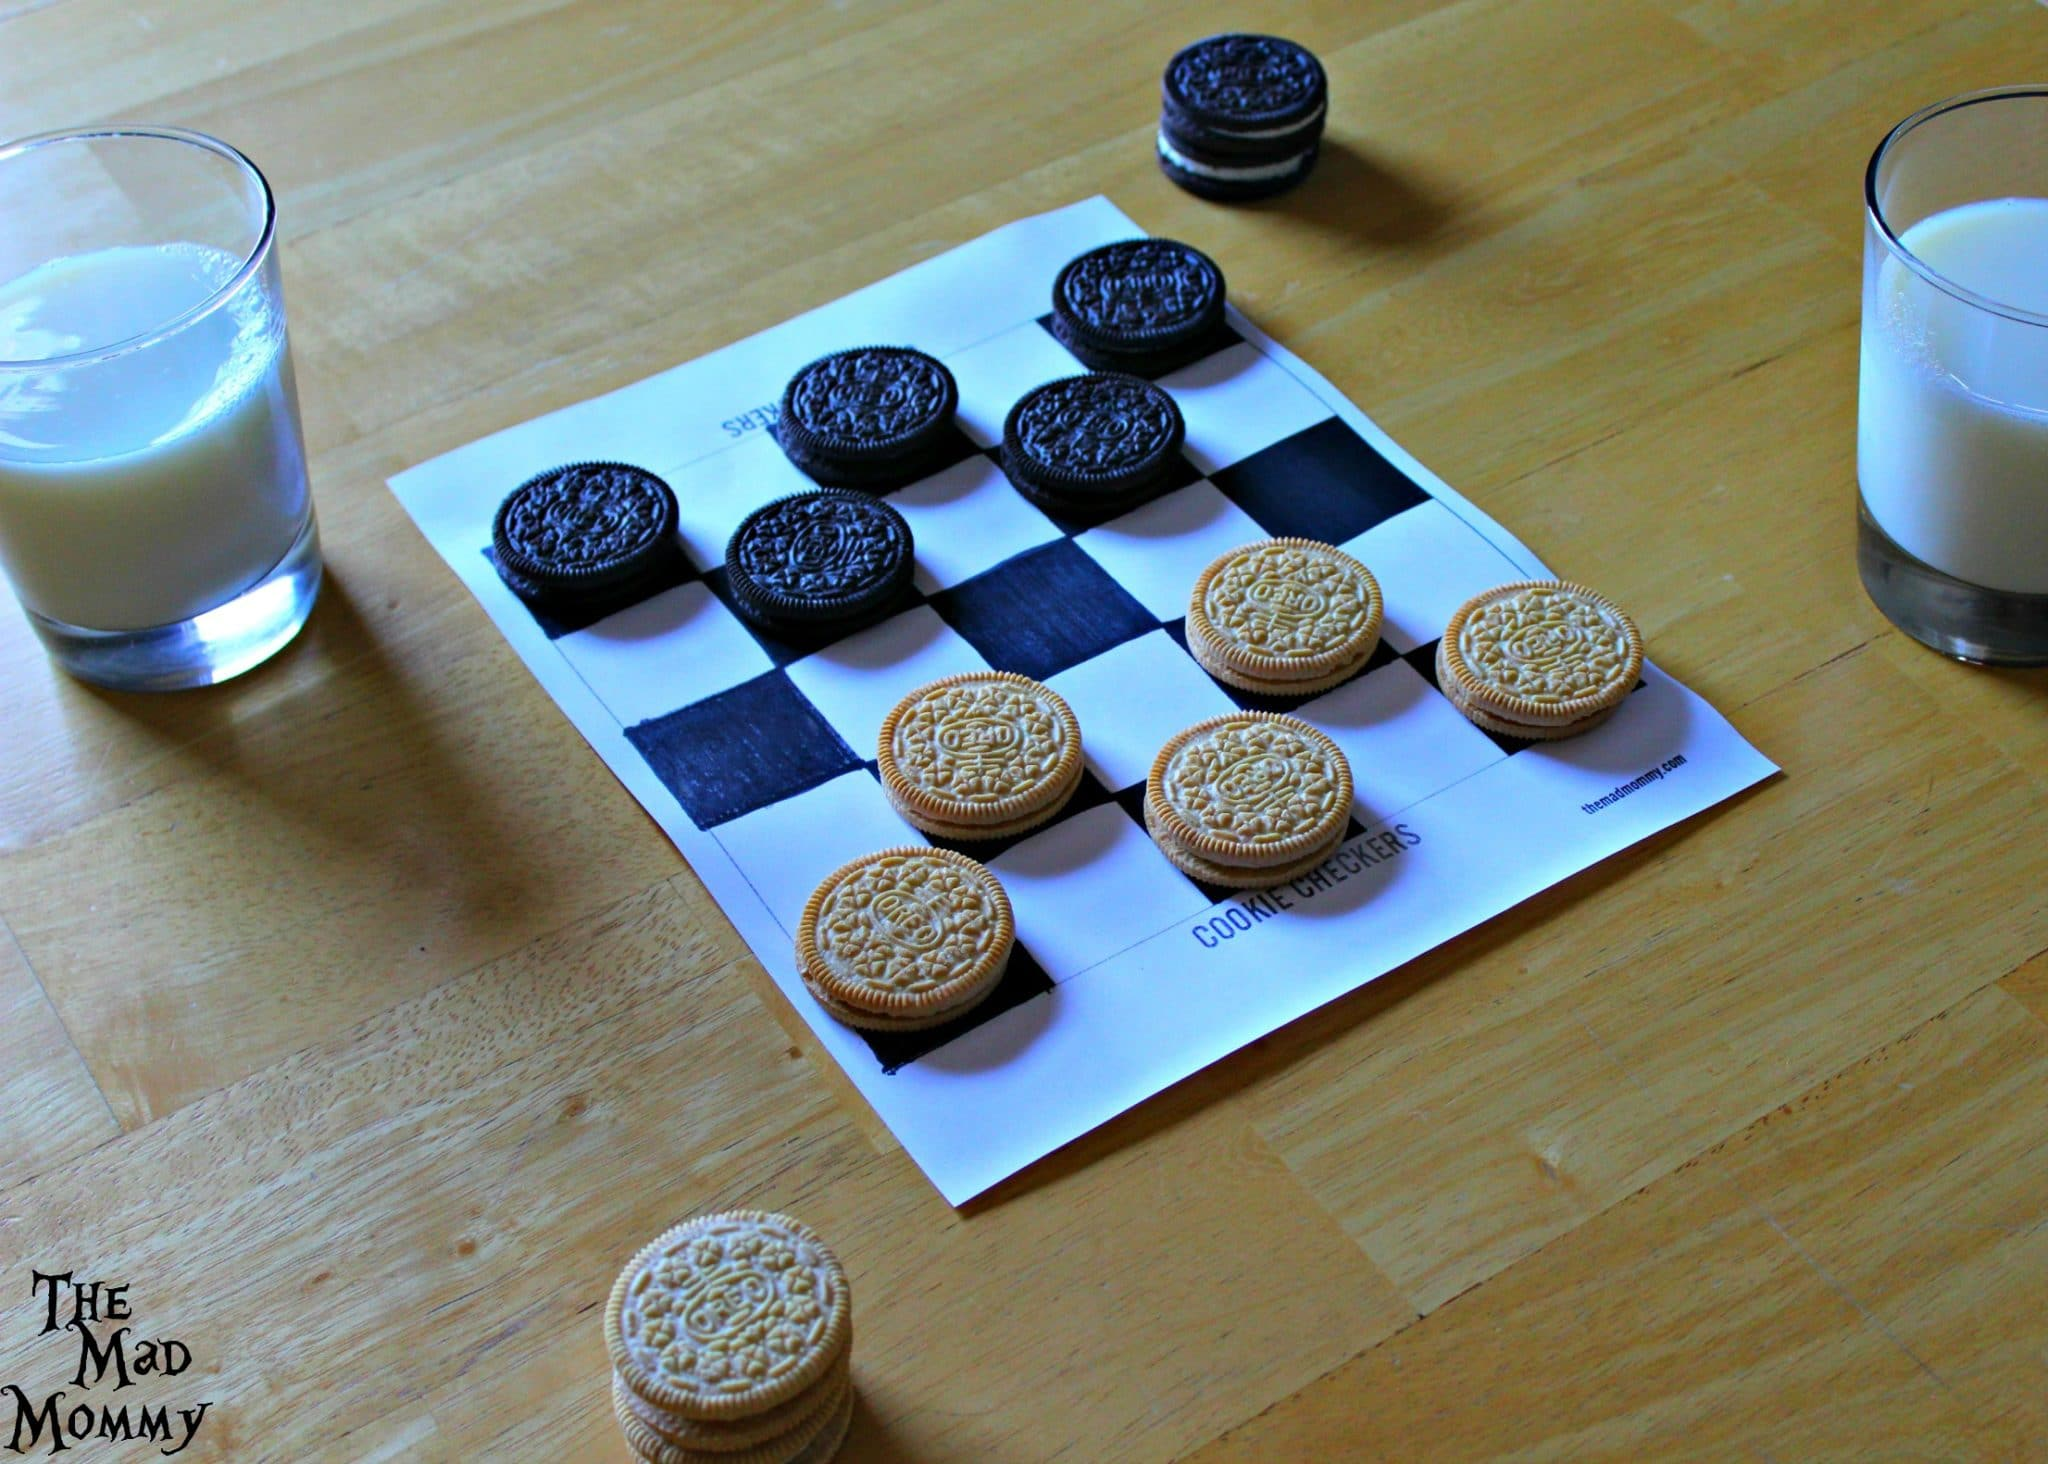 Getting ready to play some OREO Cookie Checkers and get our #OREOSuperDunk on! #Sponsored #CollectiveBias